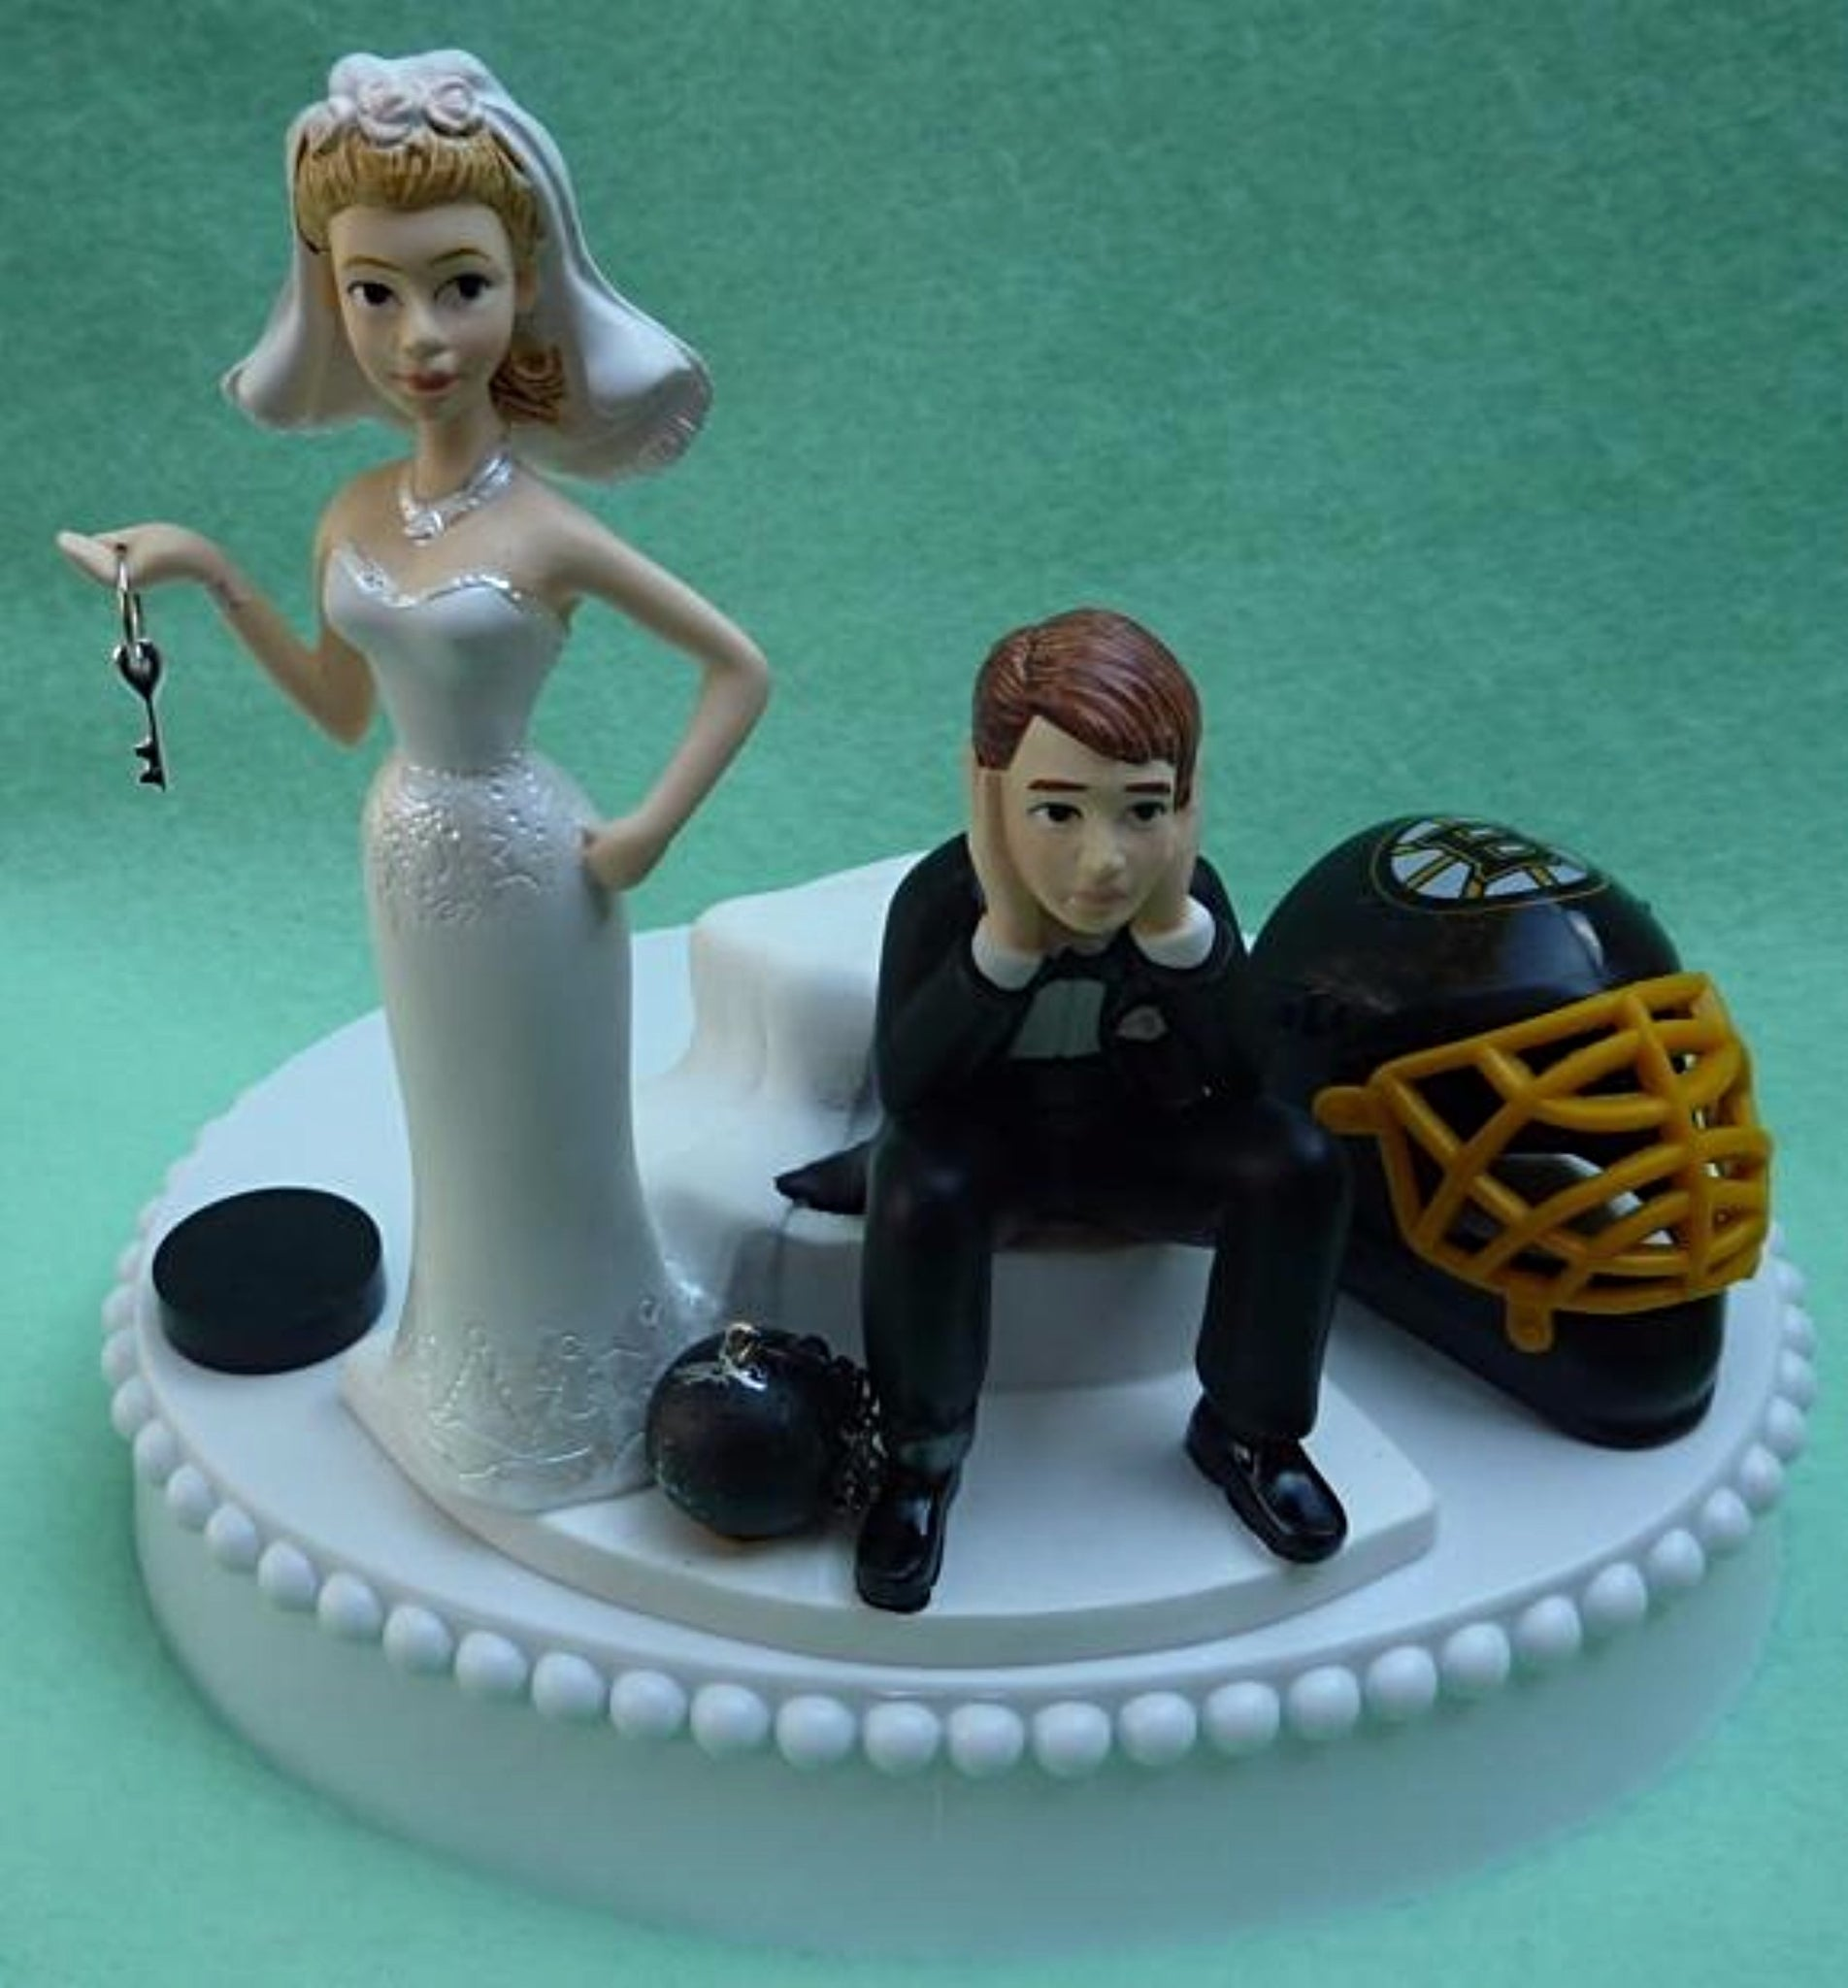 Boston Bruins wedding cake topper NHL hockey sports fans fun bride groom reception gift item idea Fun Wedding Things humorous